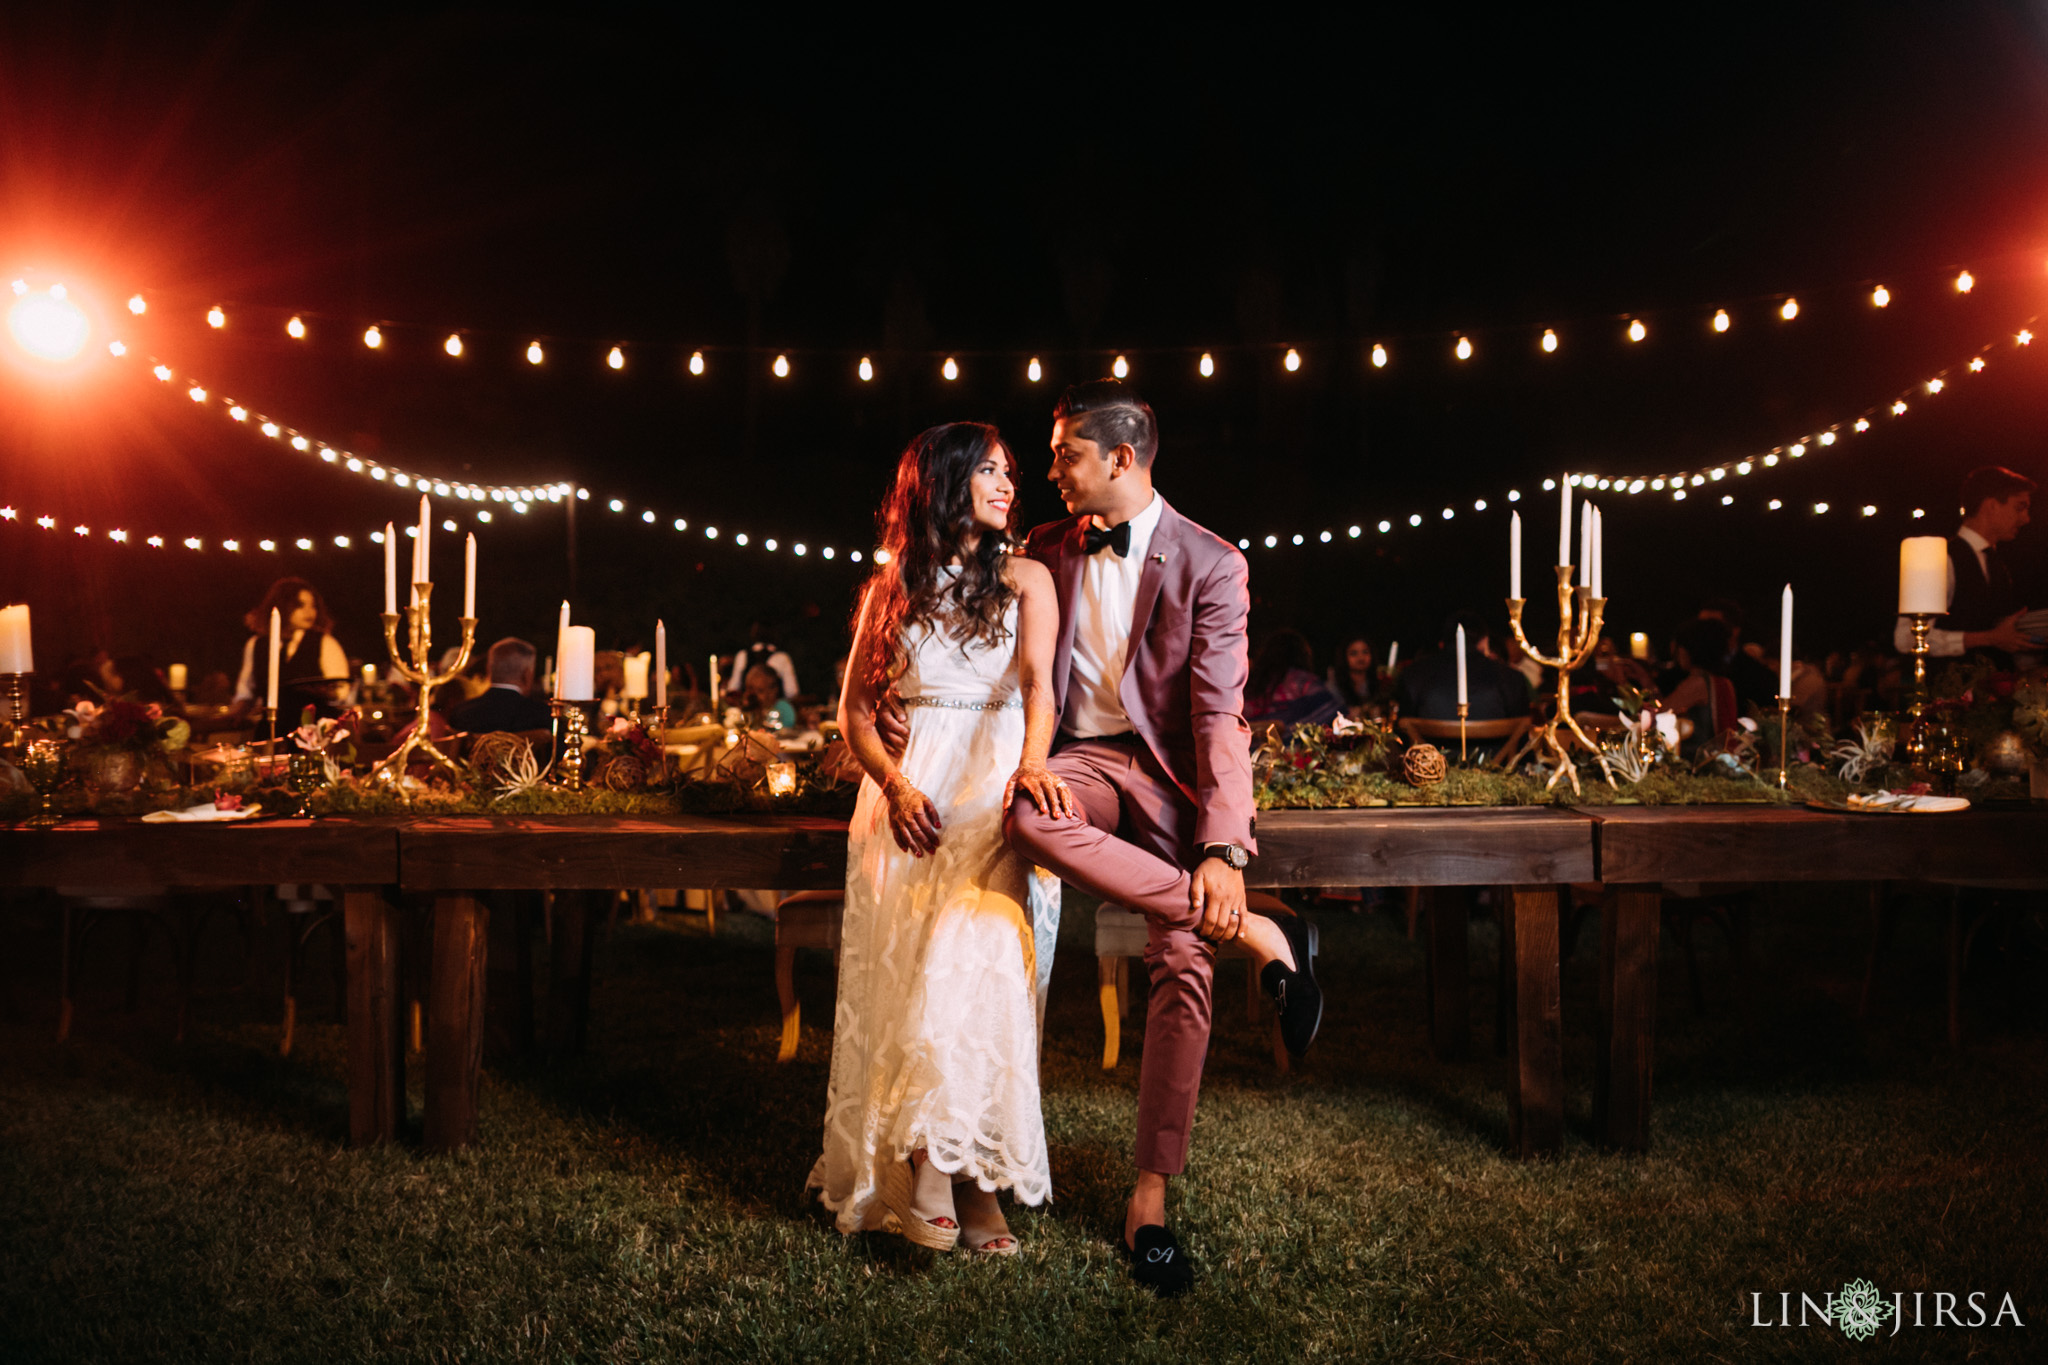 ethereal open air resort wedding night couple session